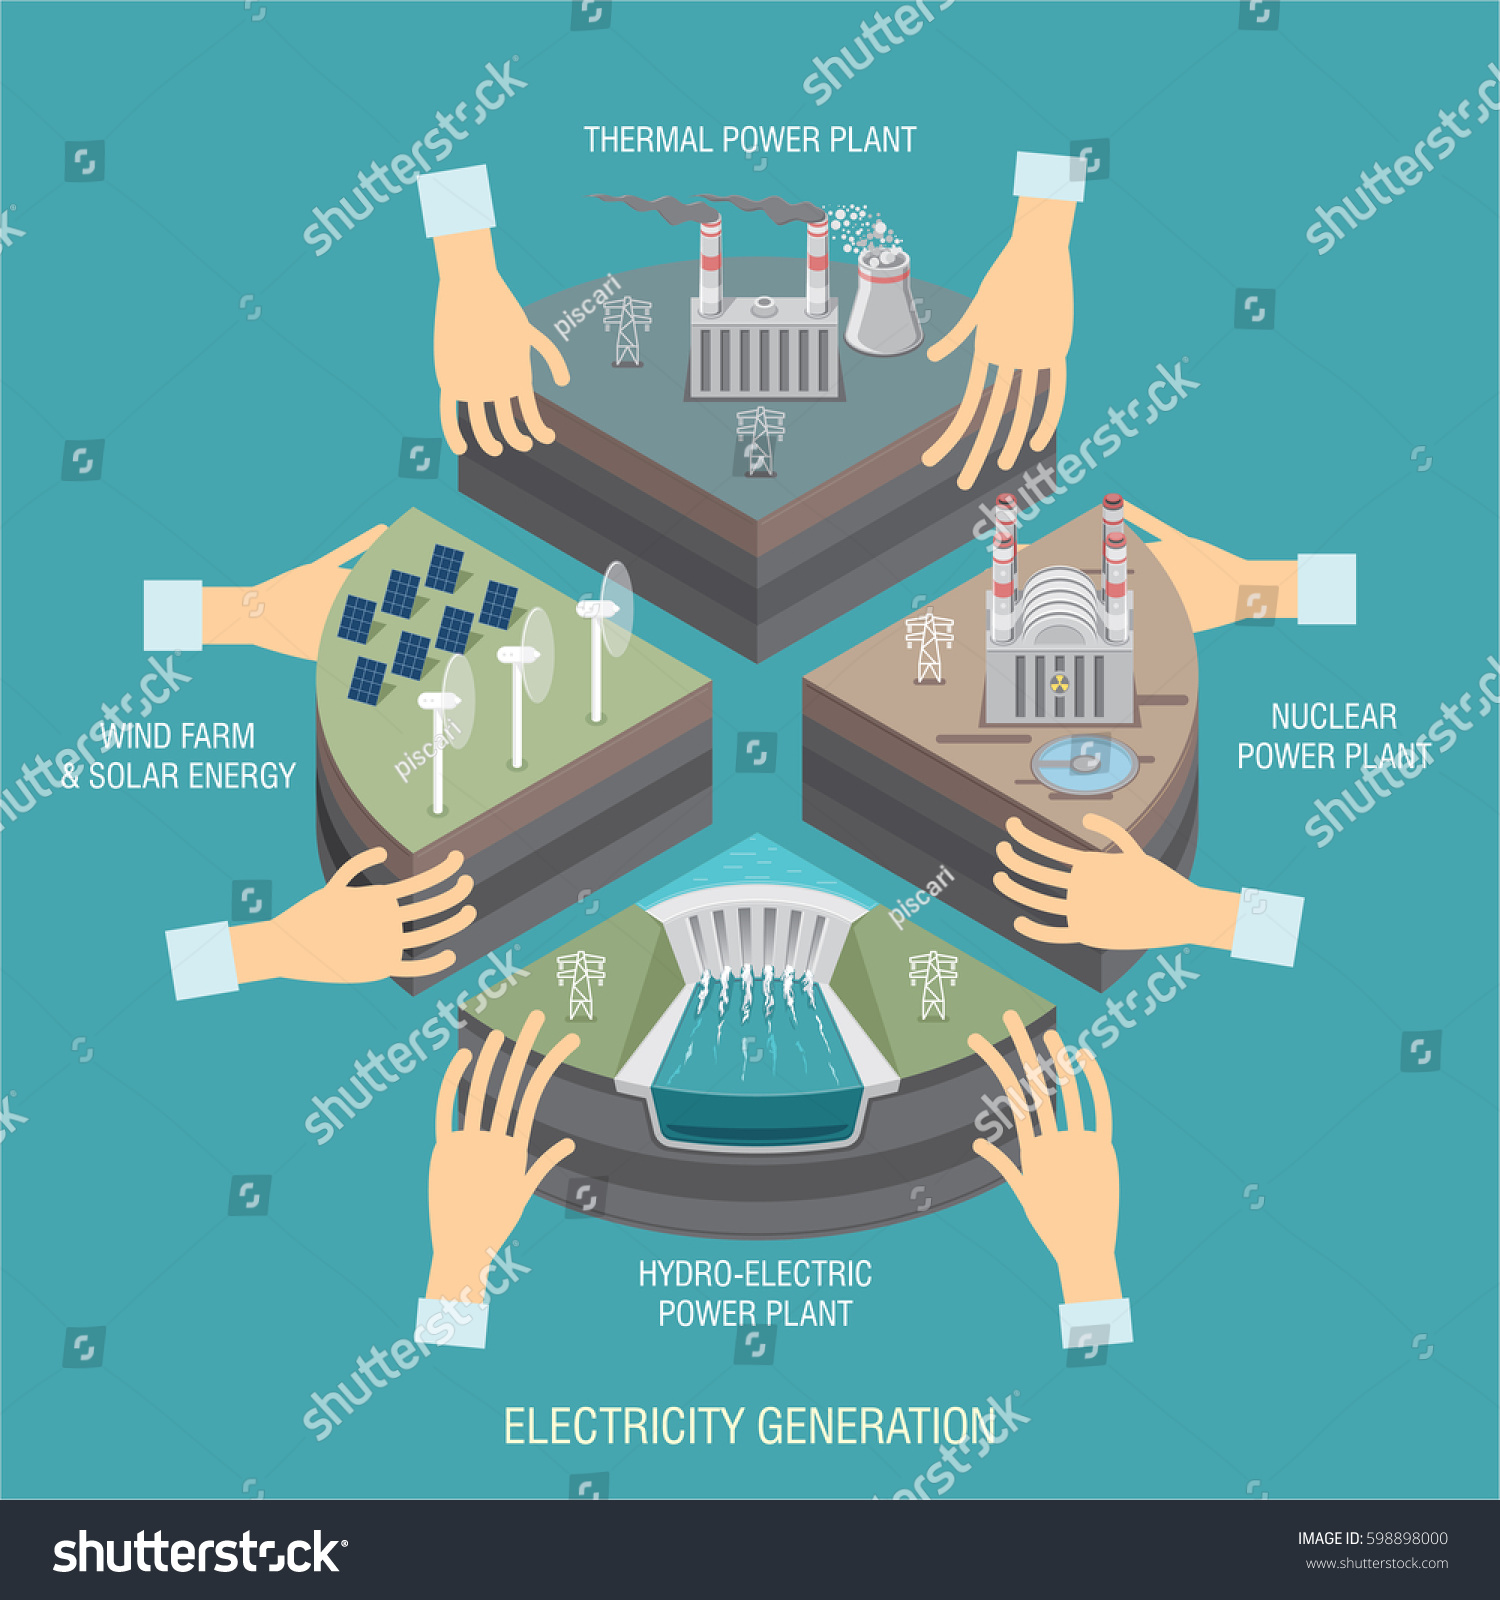 Marvelous Power Industry Diagram Energy Sector Solar Stock Vector Royalty Wiring Cloud Tziciuggs Outletorg